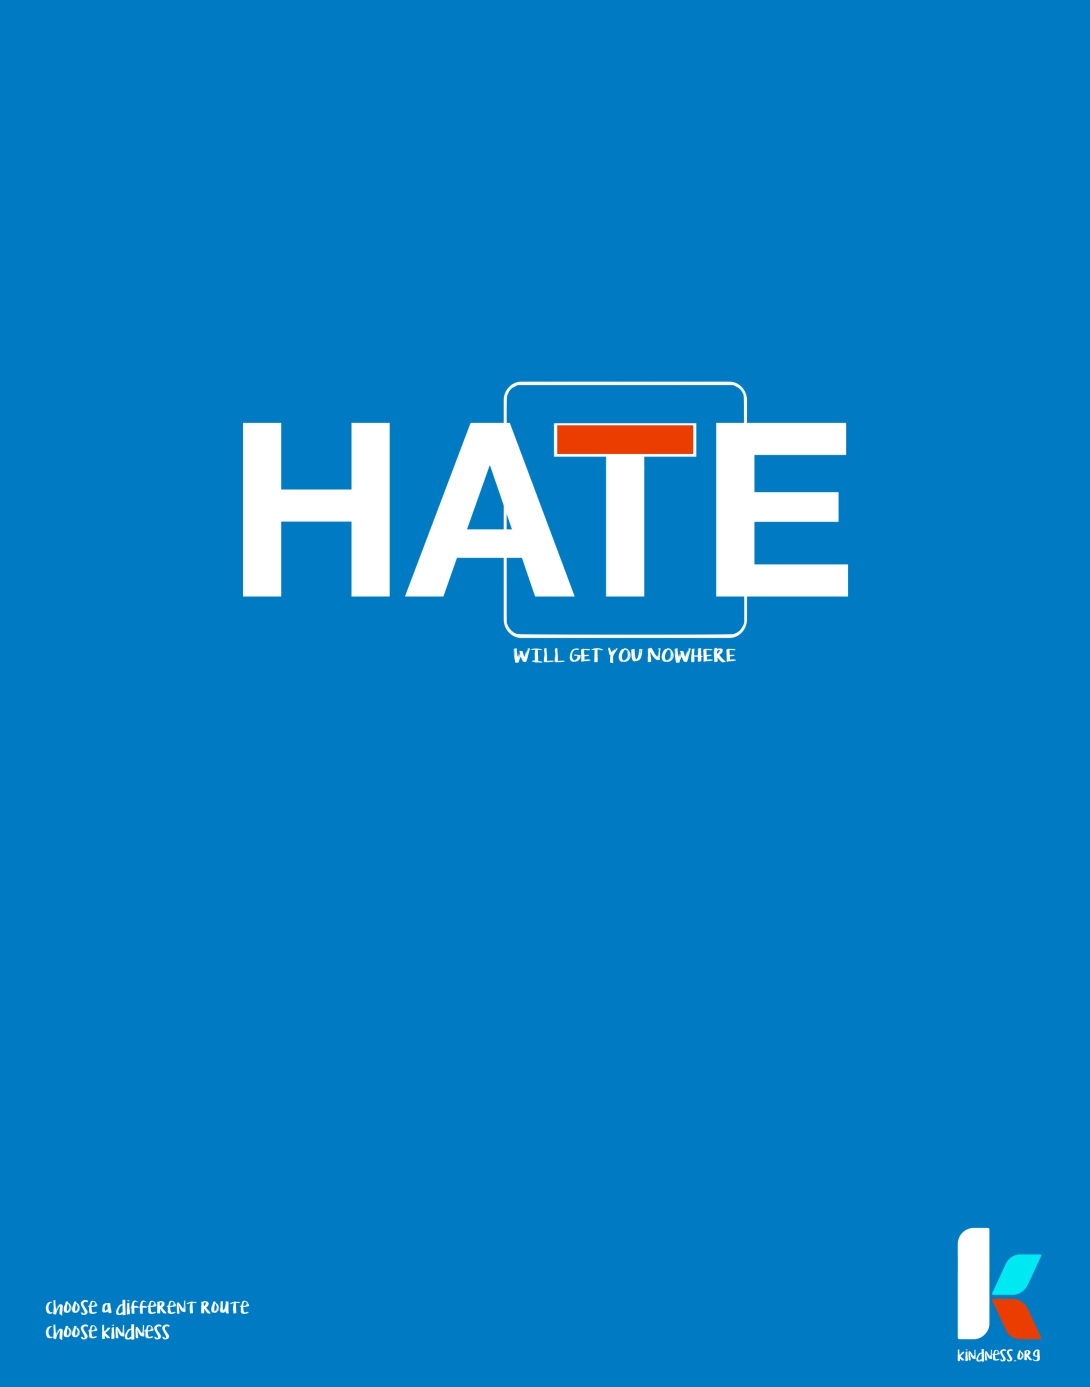 Advertising concept for kindness - hate will get you nowhere